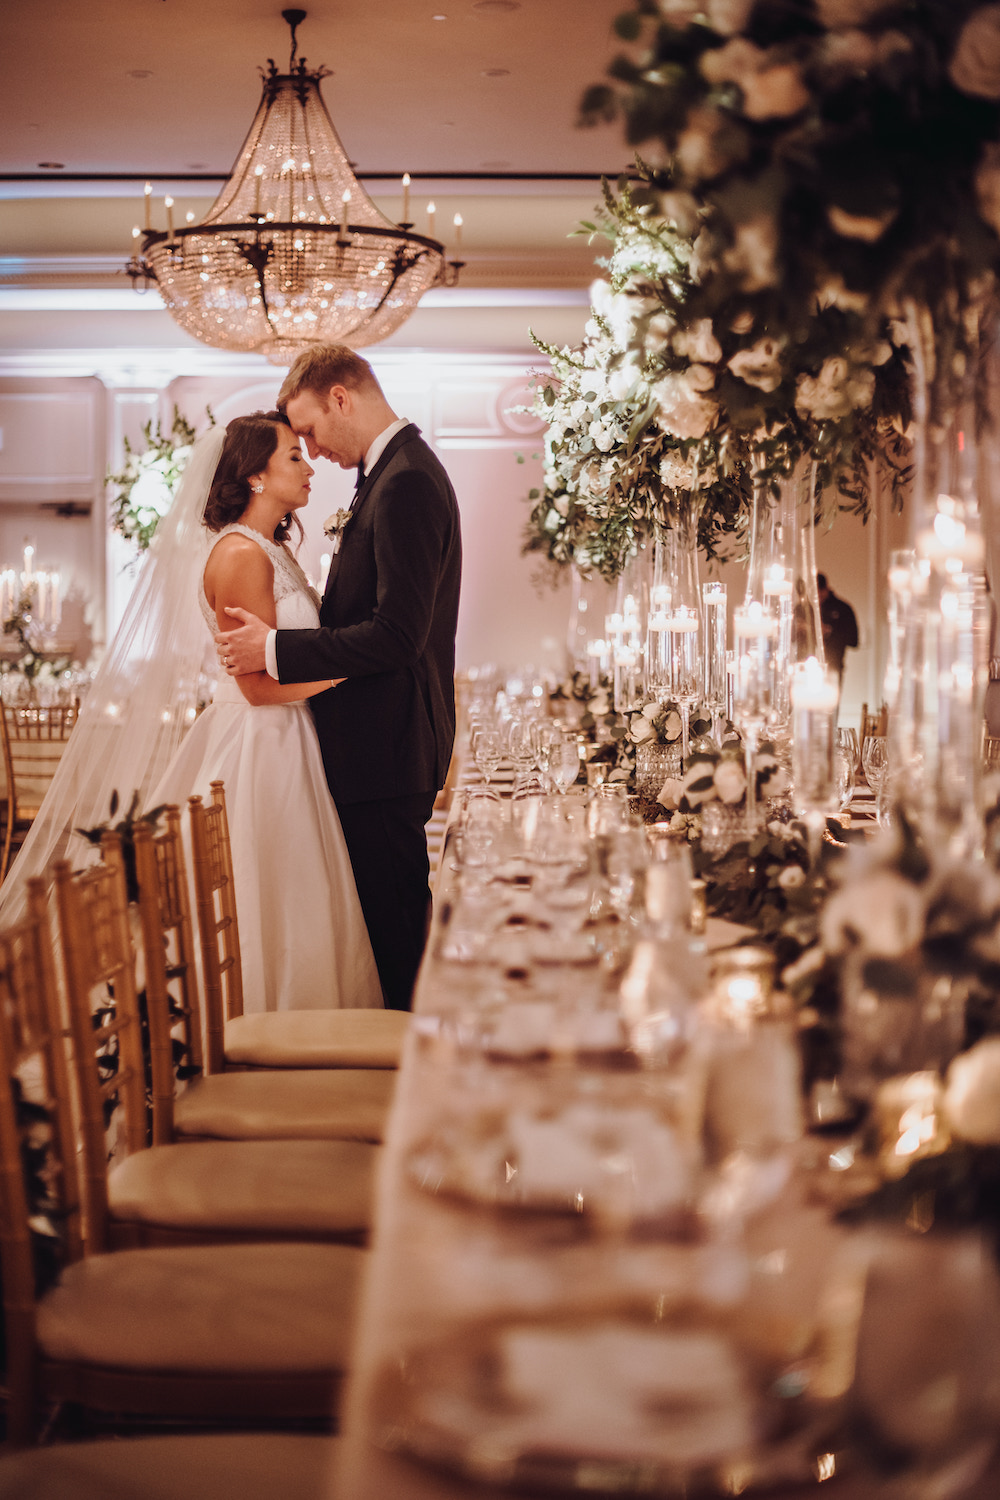 Bride and groom holding each other at the end of long wedding table set with multiple tall blooming floral centerpieces, clear votive holders and strand of lush greenery inside the Houstonian Club and Space ballroom